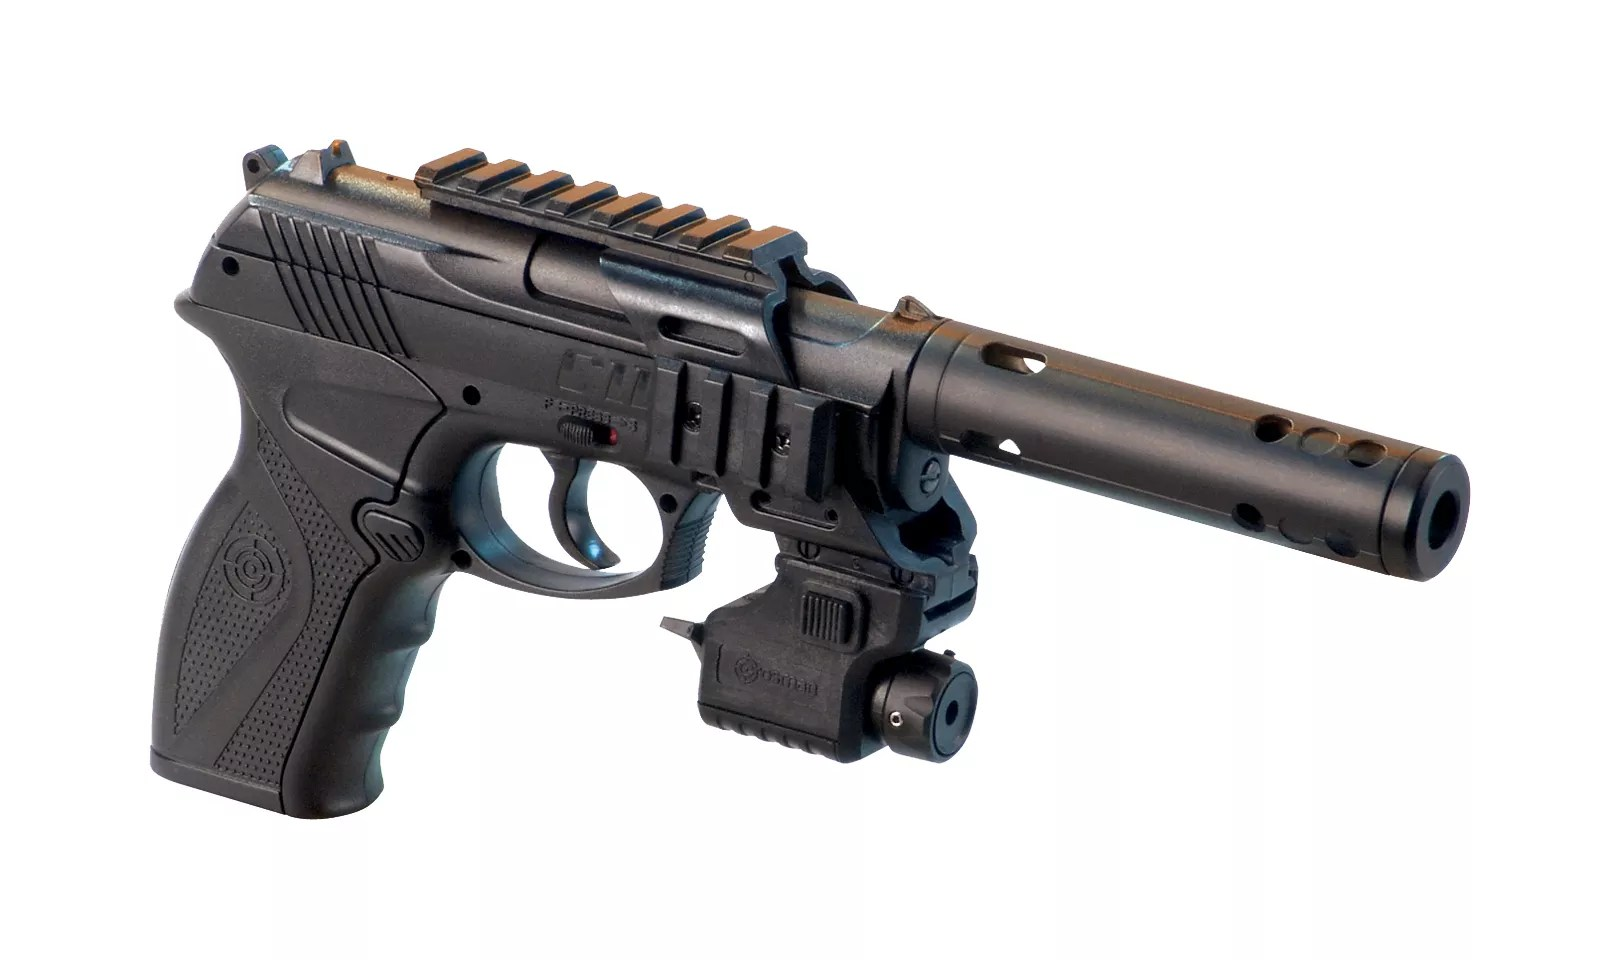 hight resolution of crosman tacc11 bb gun dick s sporting goodsproposition 65 warning iconproposition 65 warning icon